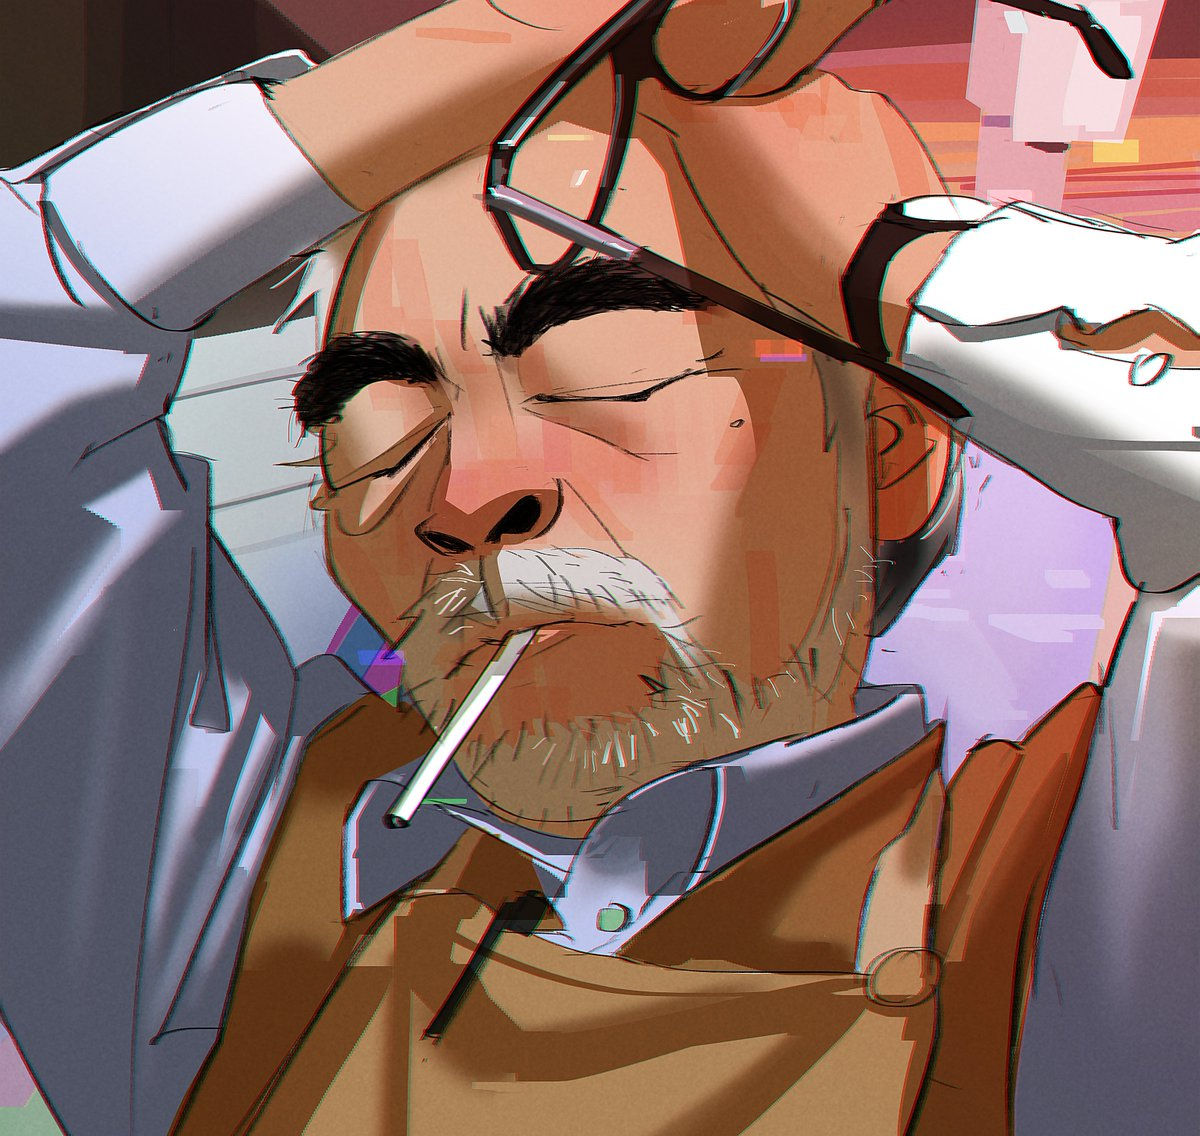 Legend says that if you draw Hayao Miyazaki struggling, you get cure of art blocks.